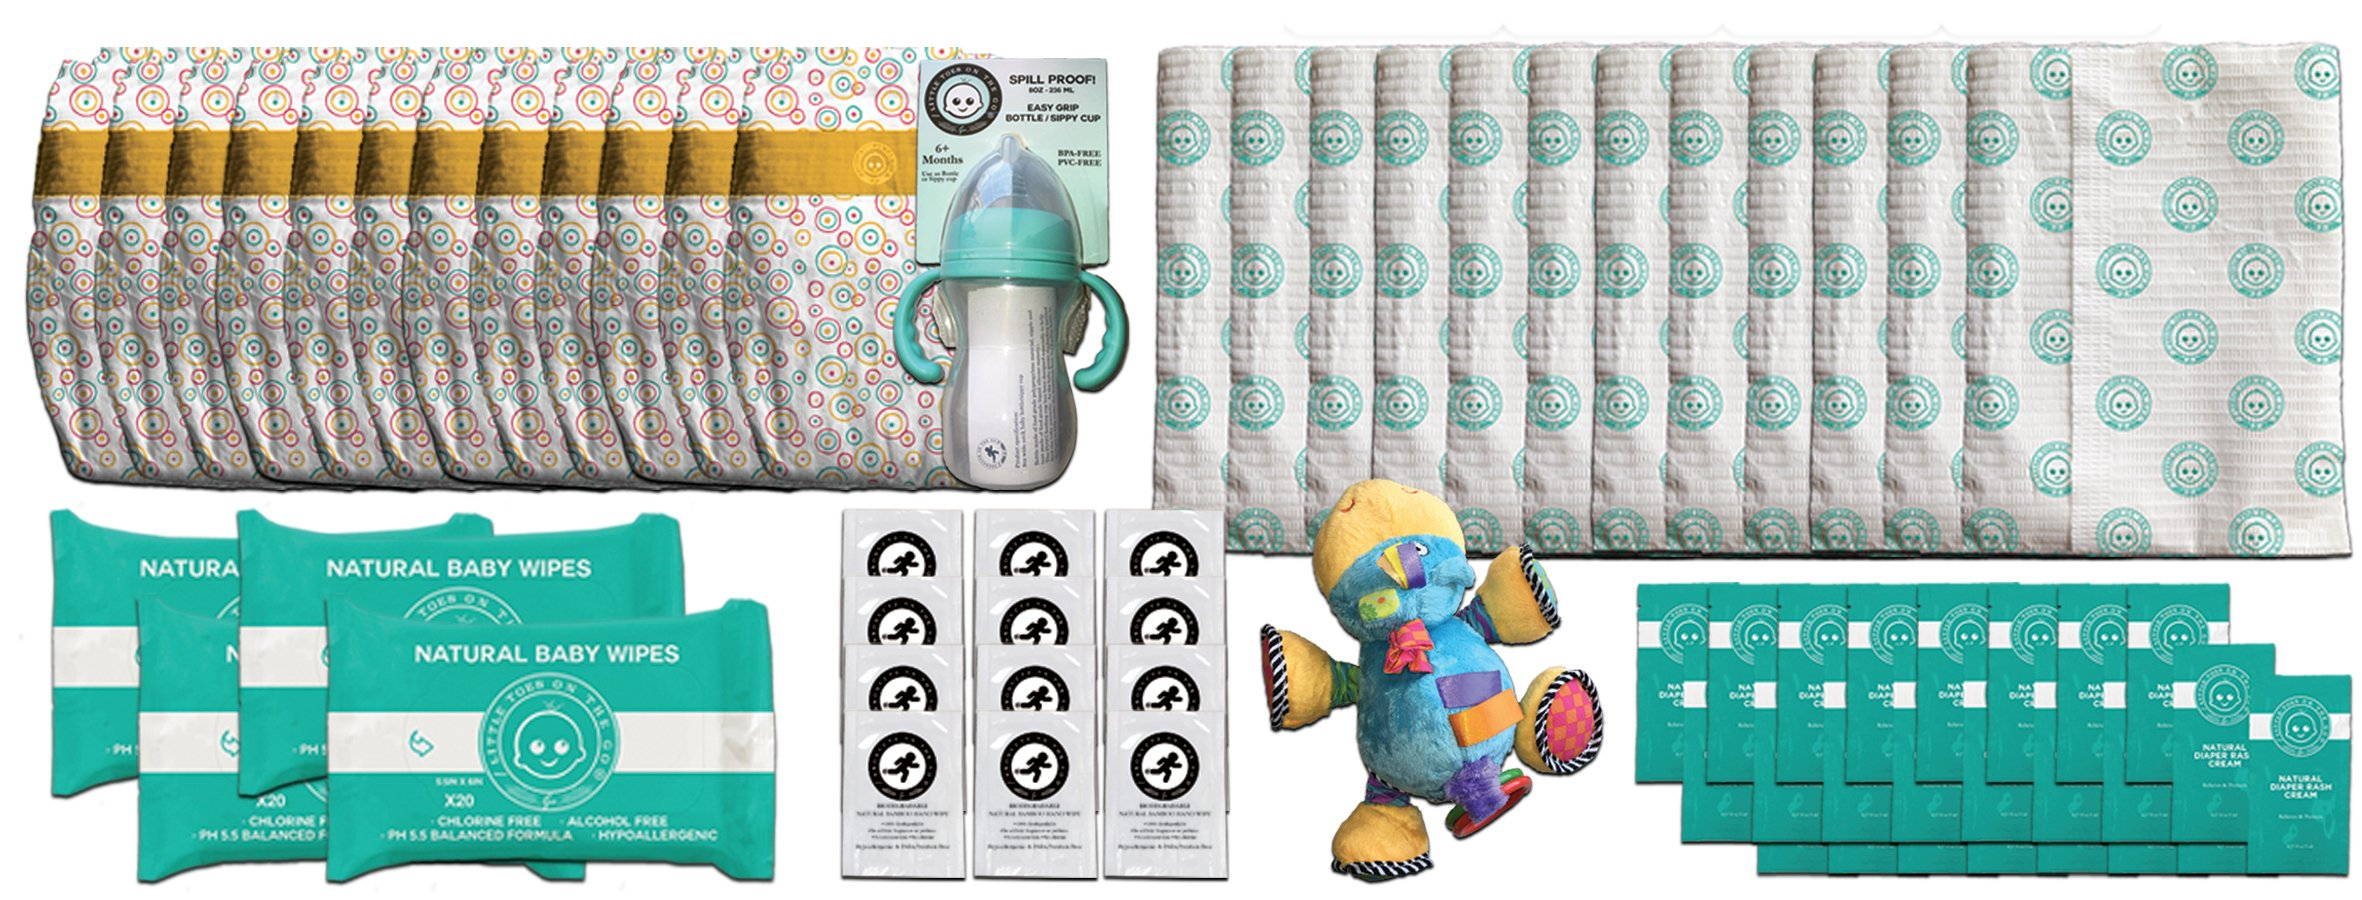 Little Toes On The Go 12 Complete Natural Diaper Change Sets with Bamboo Baby Diapers, Diaper Cream, Baby Wipes, Hand Wipes, Changing Pad, Bottle/Sippy Cup and Toy in Fabric Tote (Medium 13-24lbs)